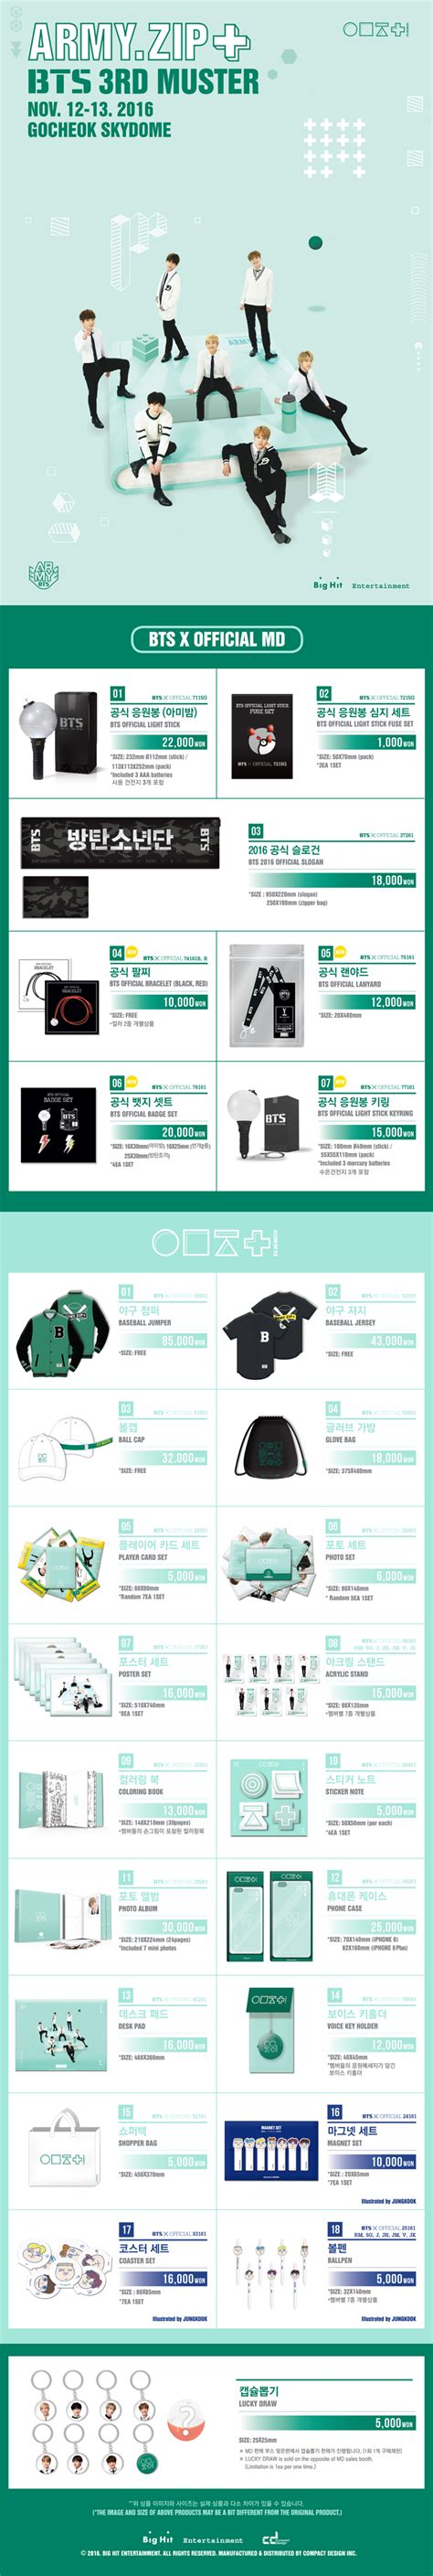 bts muster bts 3rd muster army zip